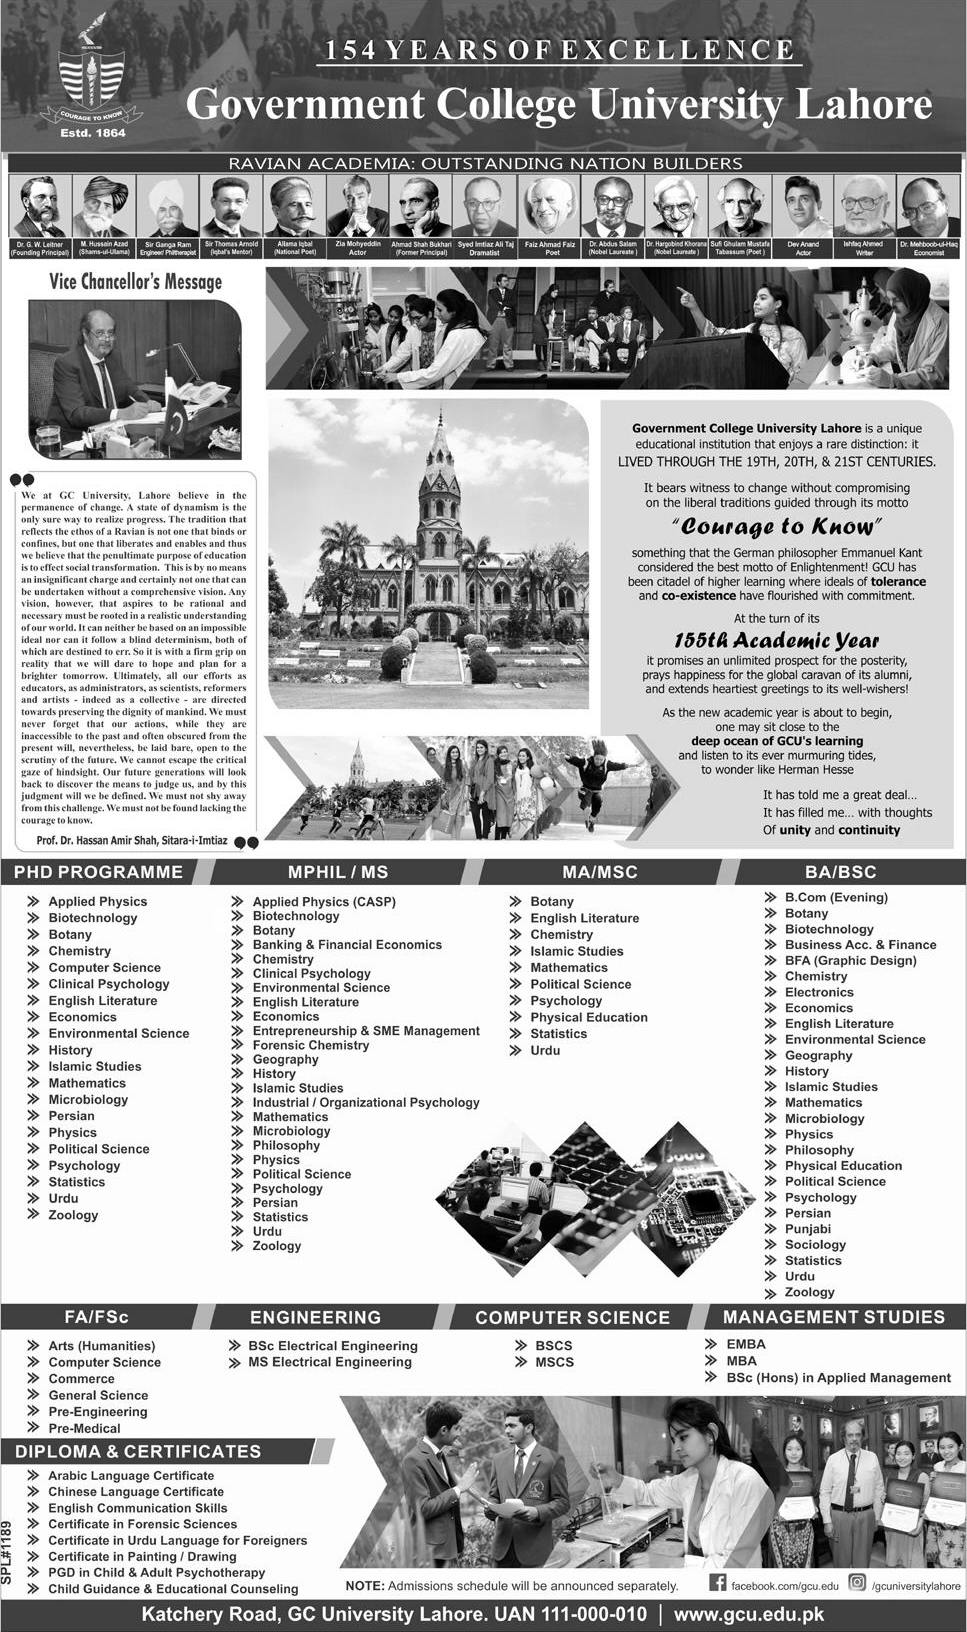 GC University Lahore List of All Programs For Admission 2018